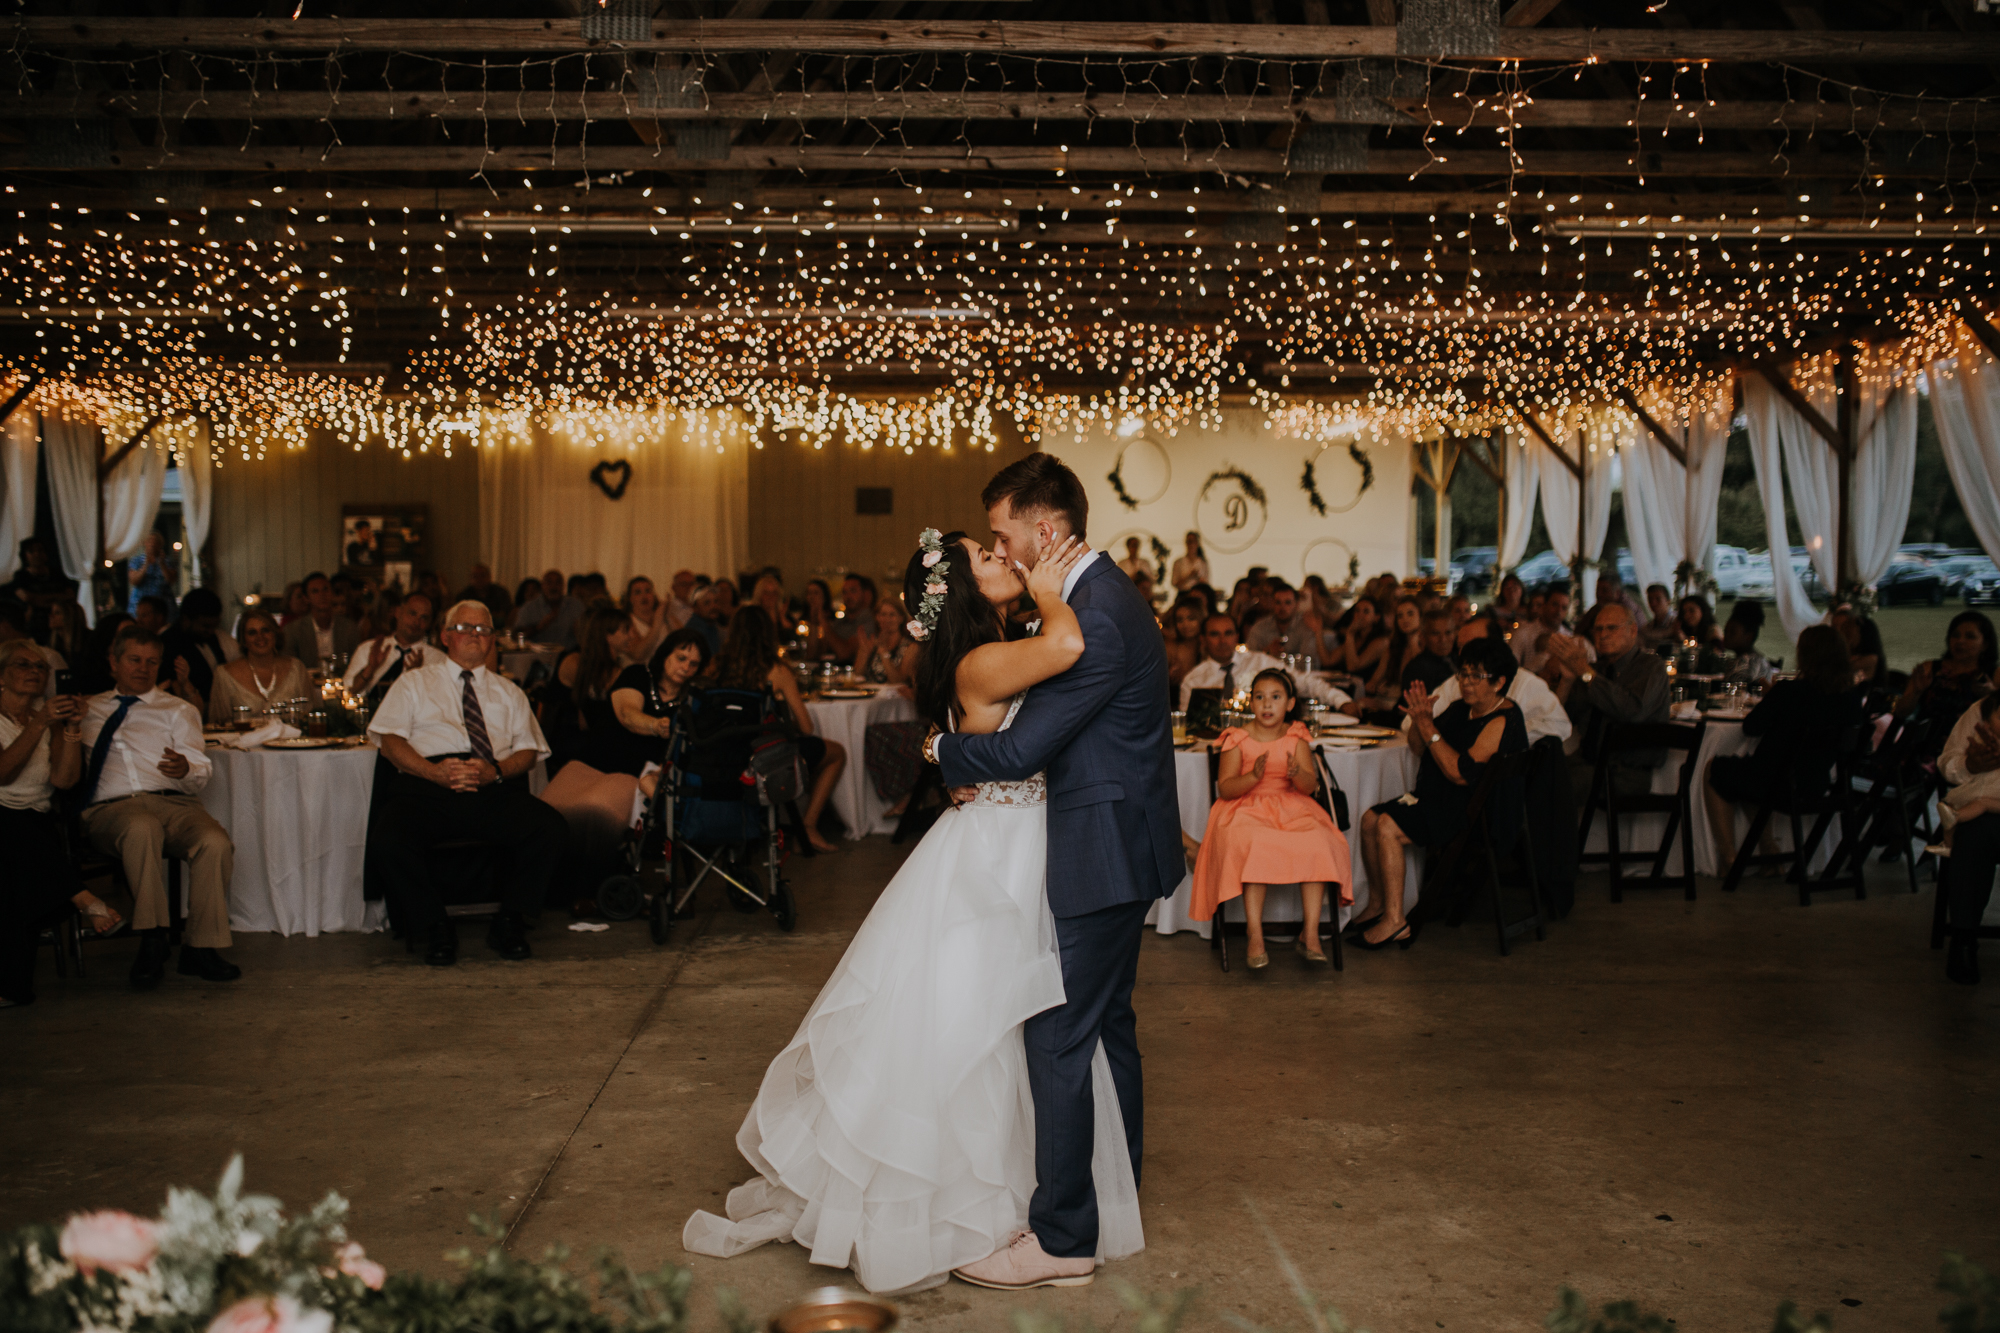 husband and wife first dance | wedding first dance | first dance as husband and wife | boho wedding reception | romantic sarasota wedding | twinkle lights at the reception | first dance under the twinkle lights